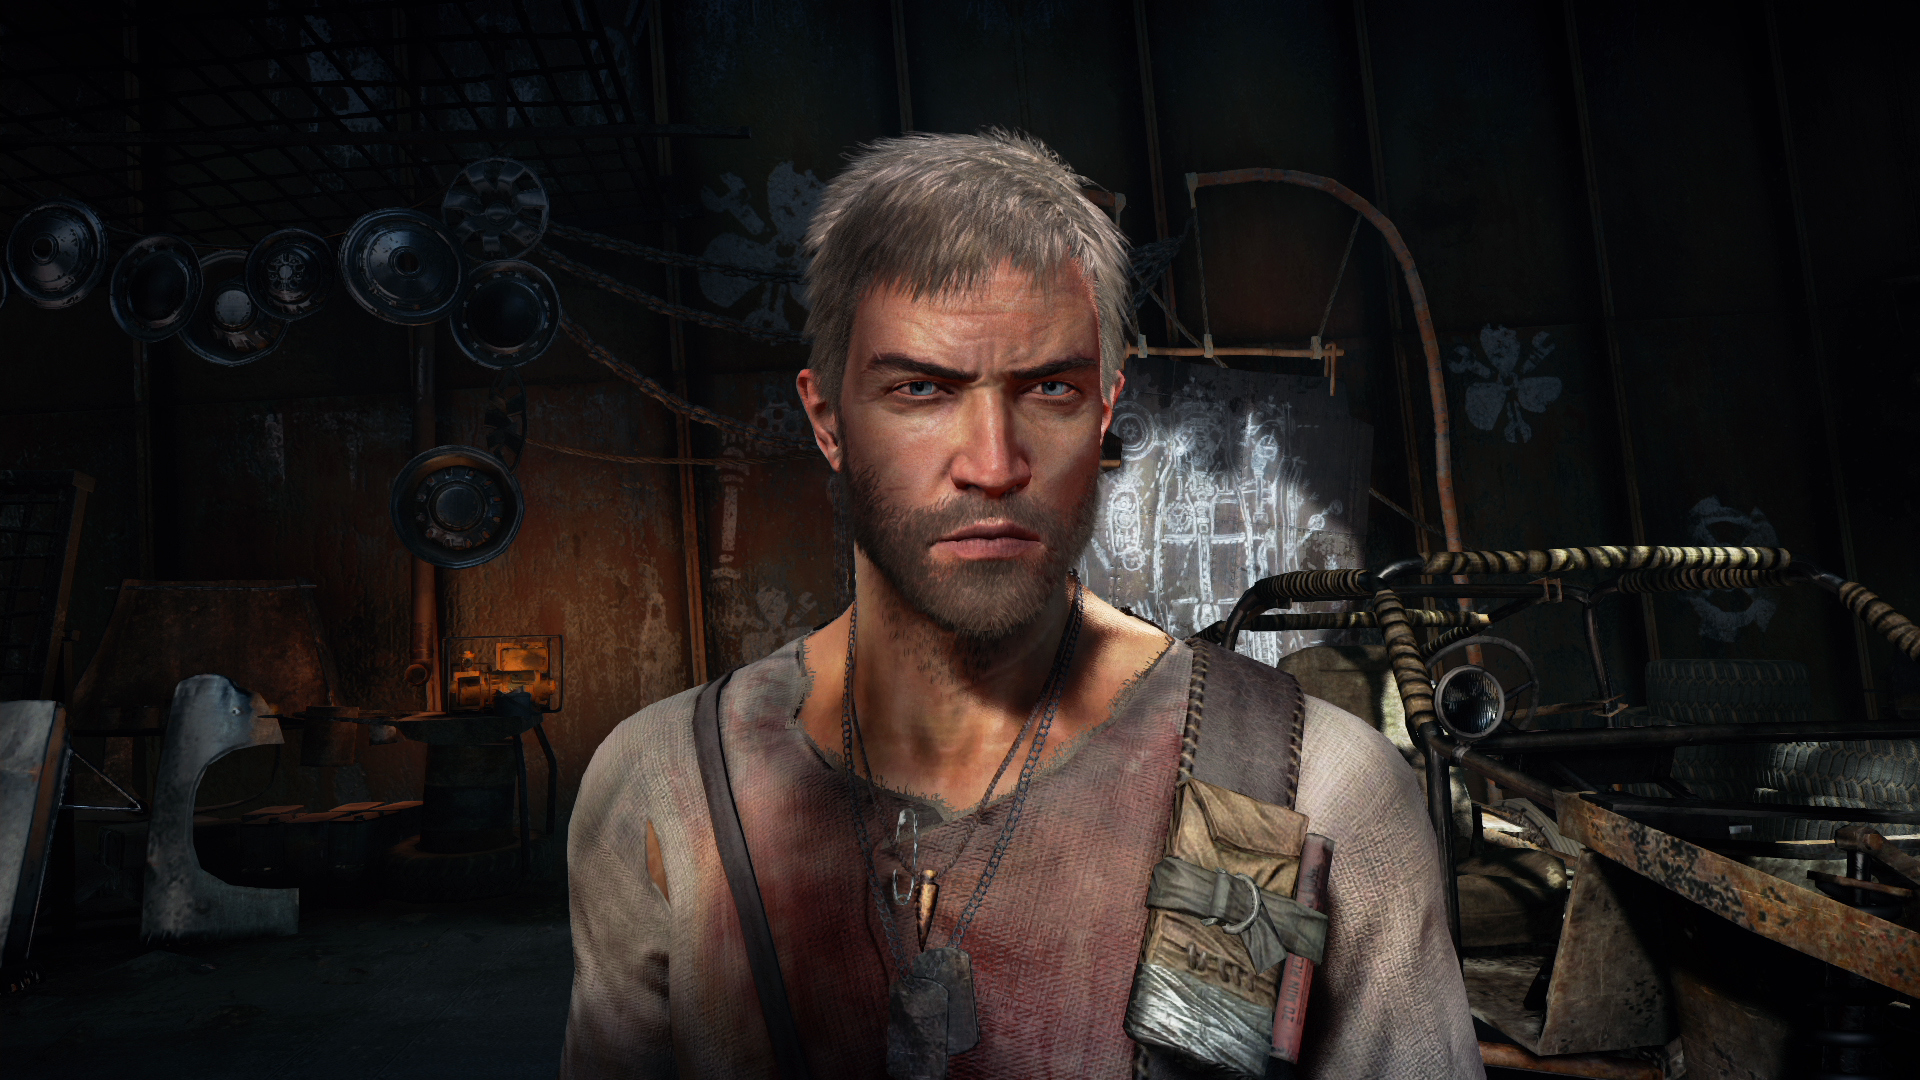 Mad max release date in Melbourne